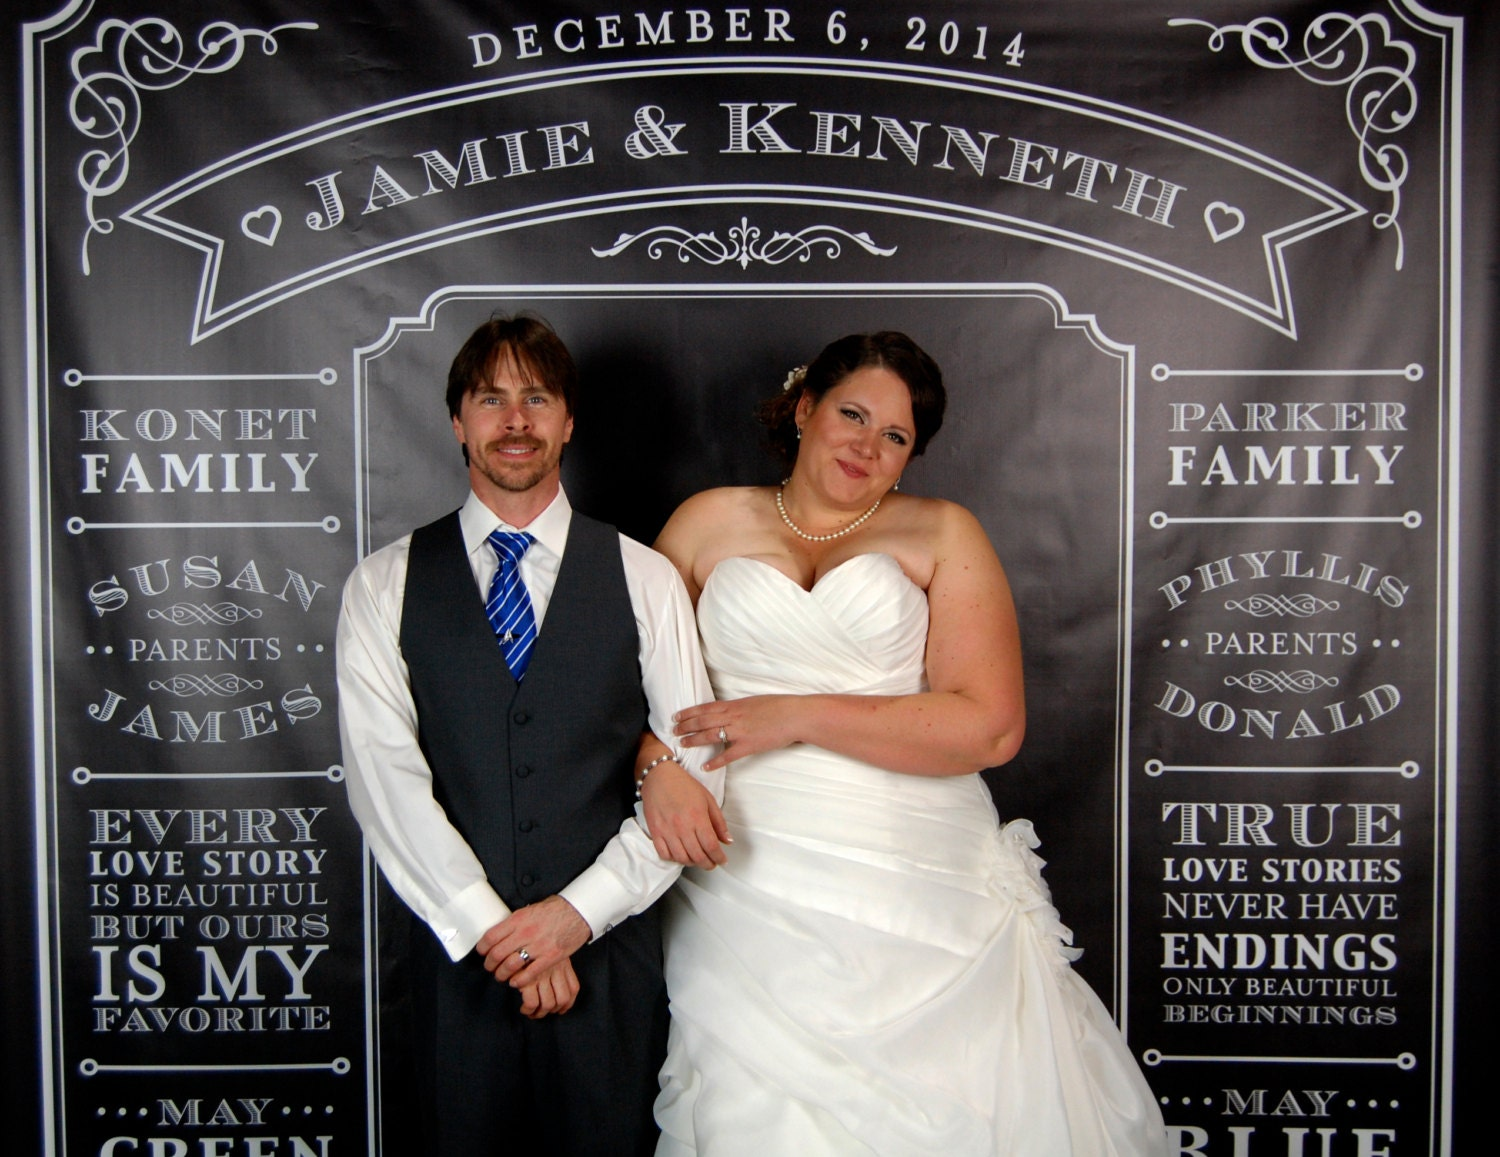 Personalized Photo Booth Backdrop Wedding Reception